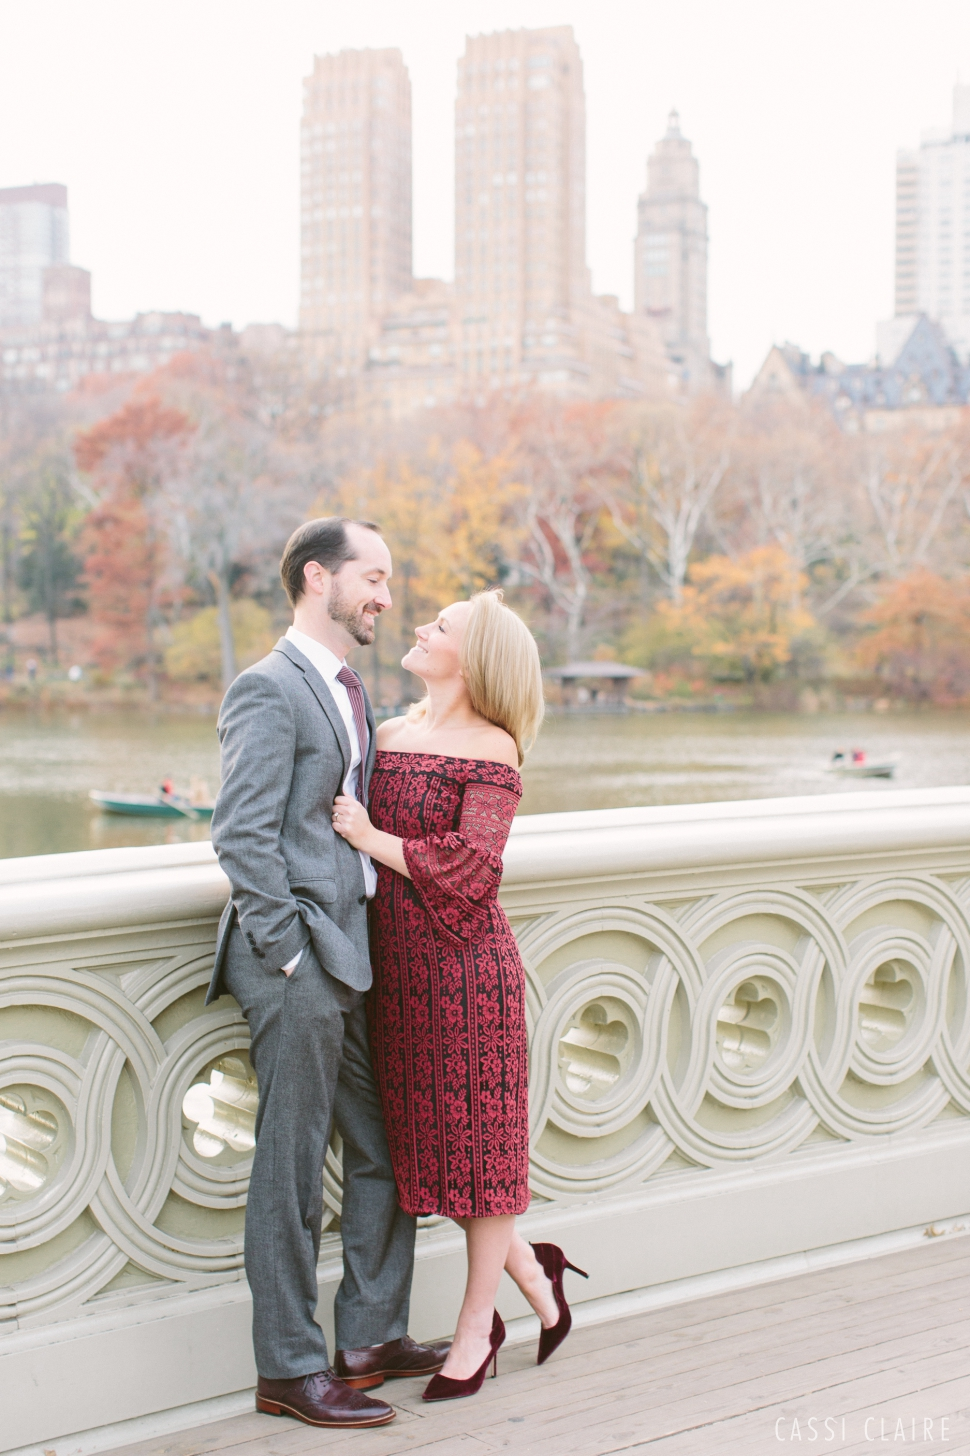 Christmas-in-Central-Park_CassiClaire_16.jpg